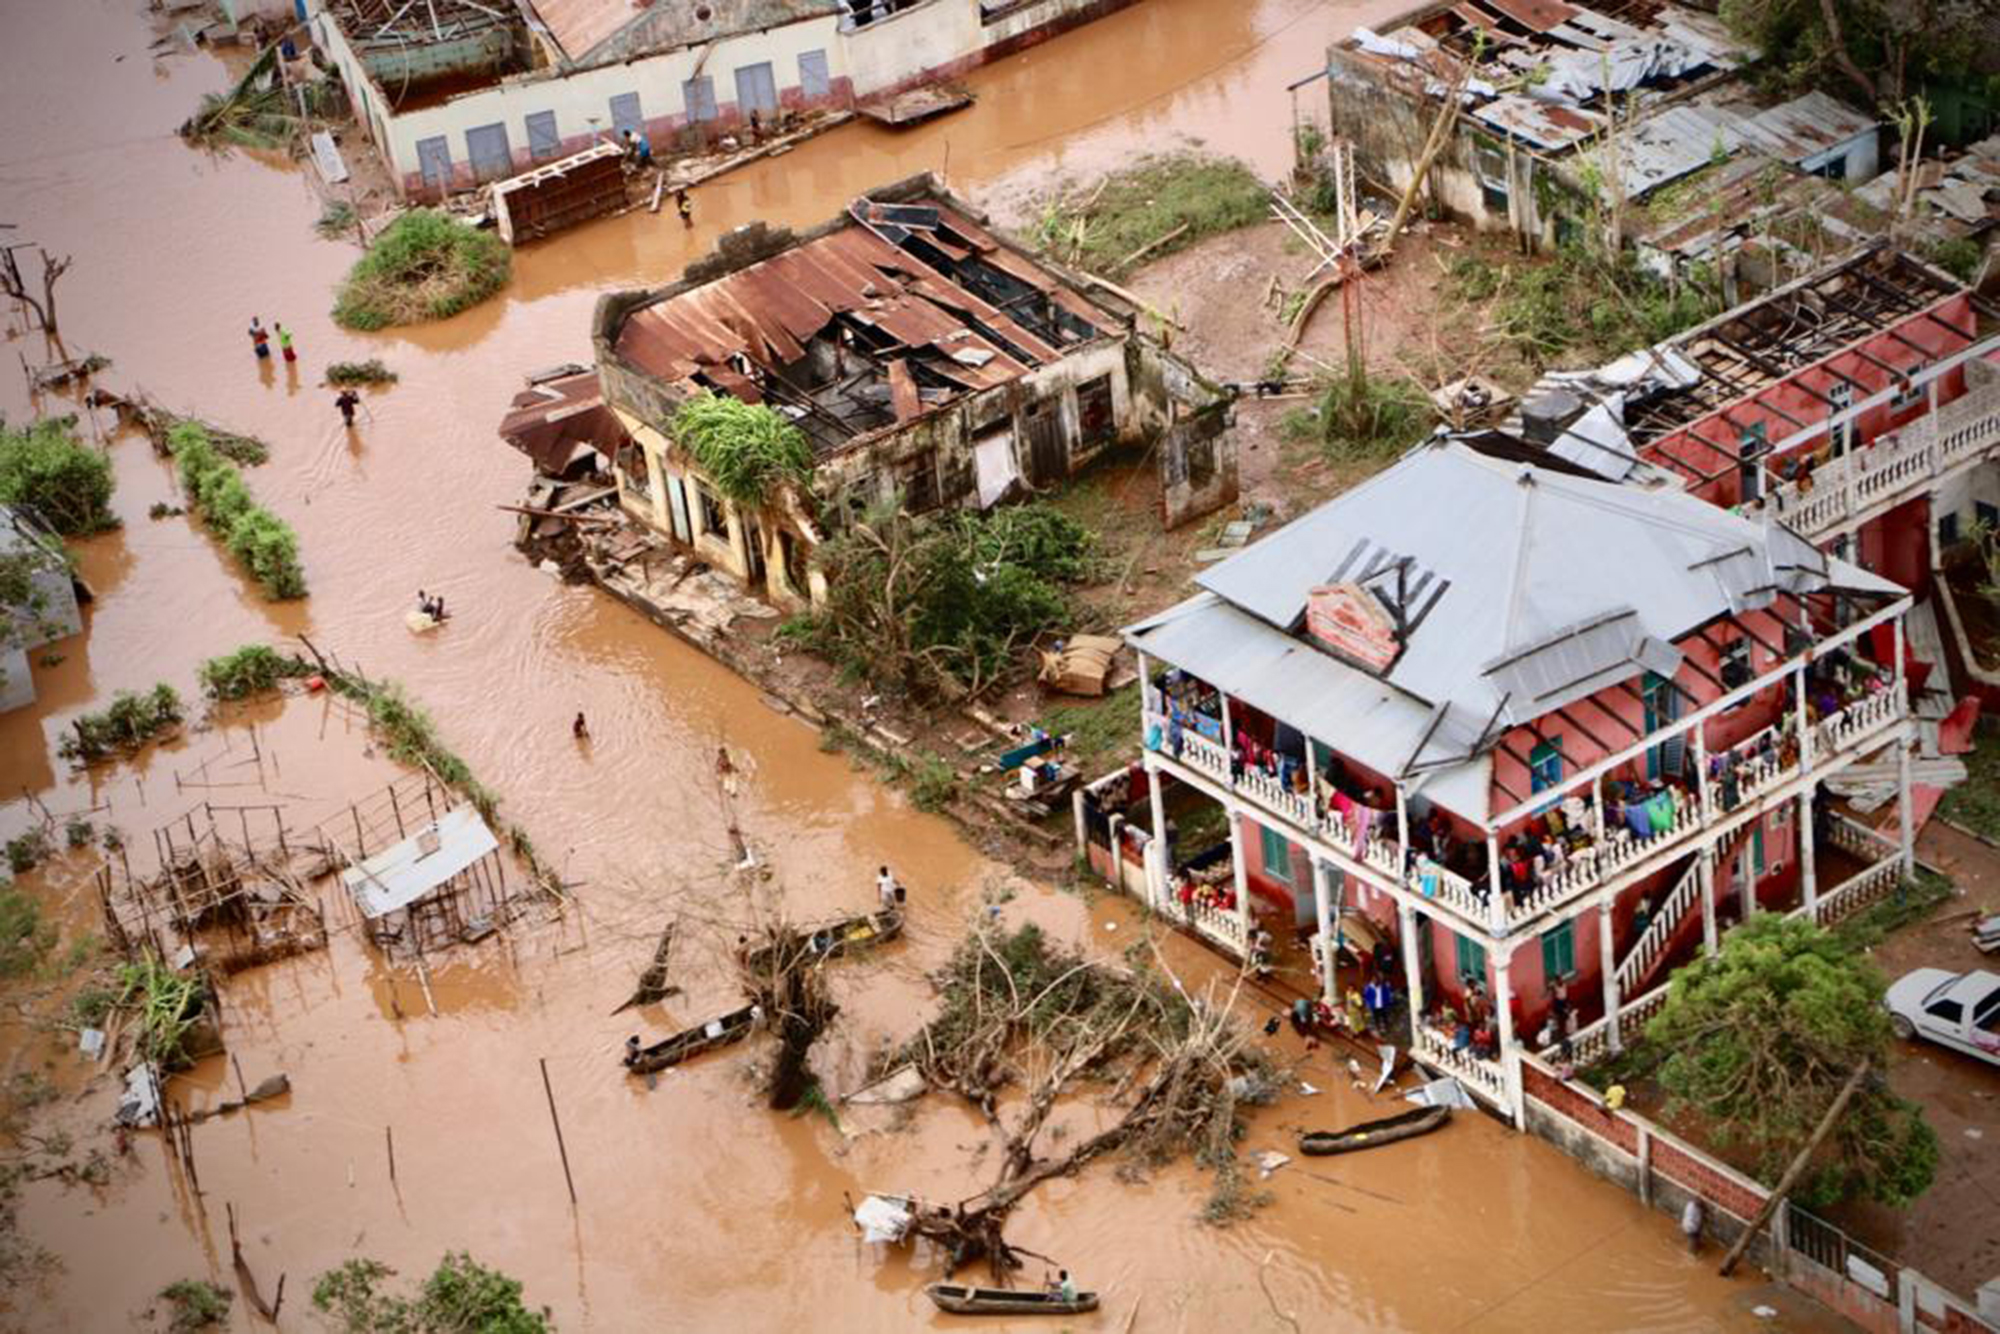 People walk on the flooded street of Buzi, central Mozambique, on March 20, 2019 after the passage of the cyclone Idai.